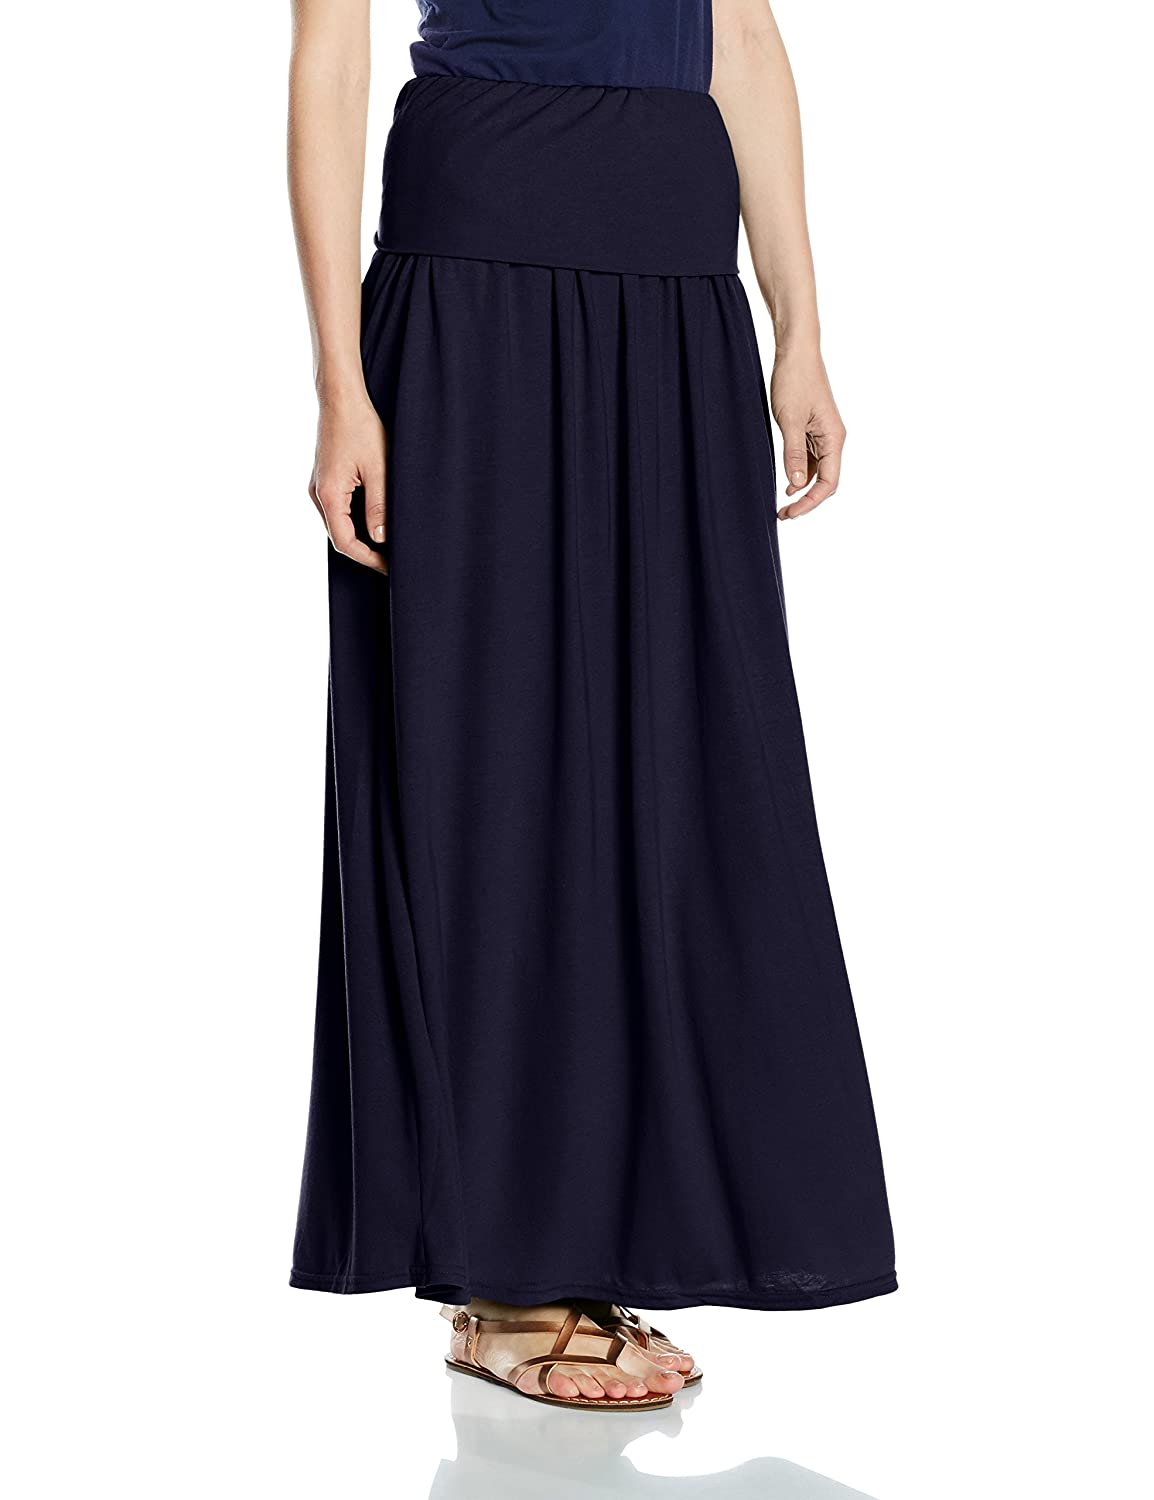 Hot Squash Luxury Roll Top Maxi, Gonna Donna